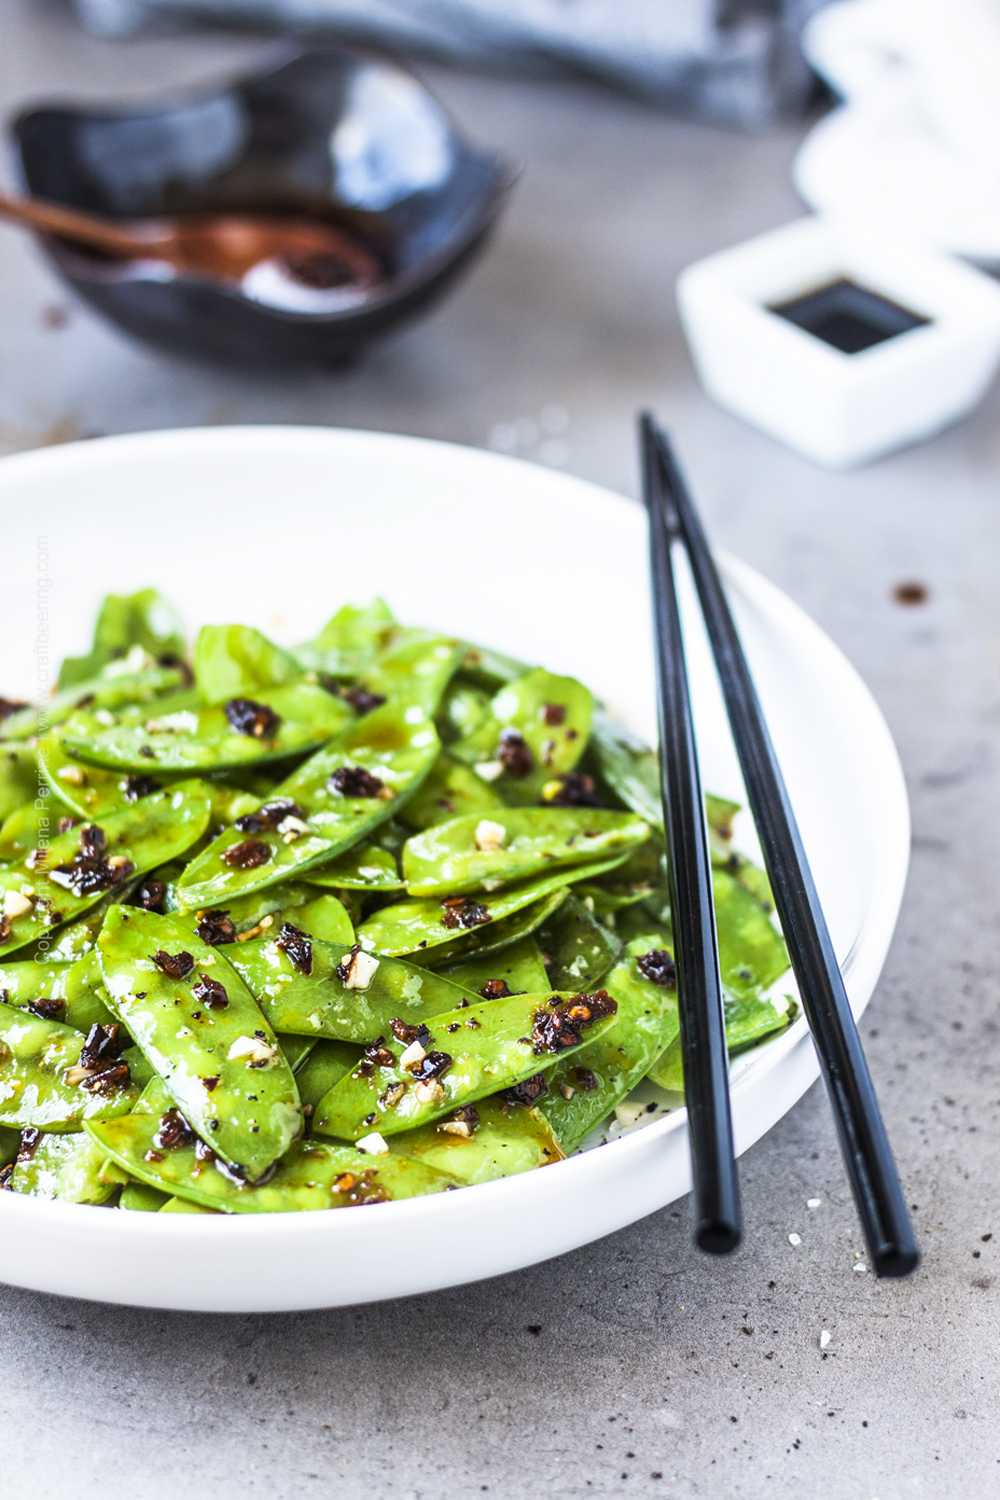 Sauteed snow peas tossed in Asian chili oil.